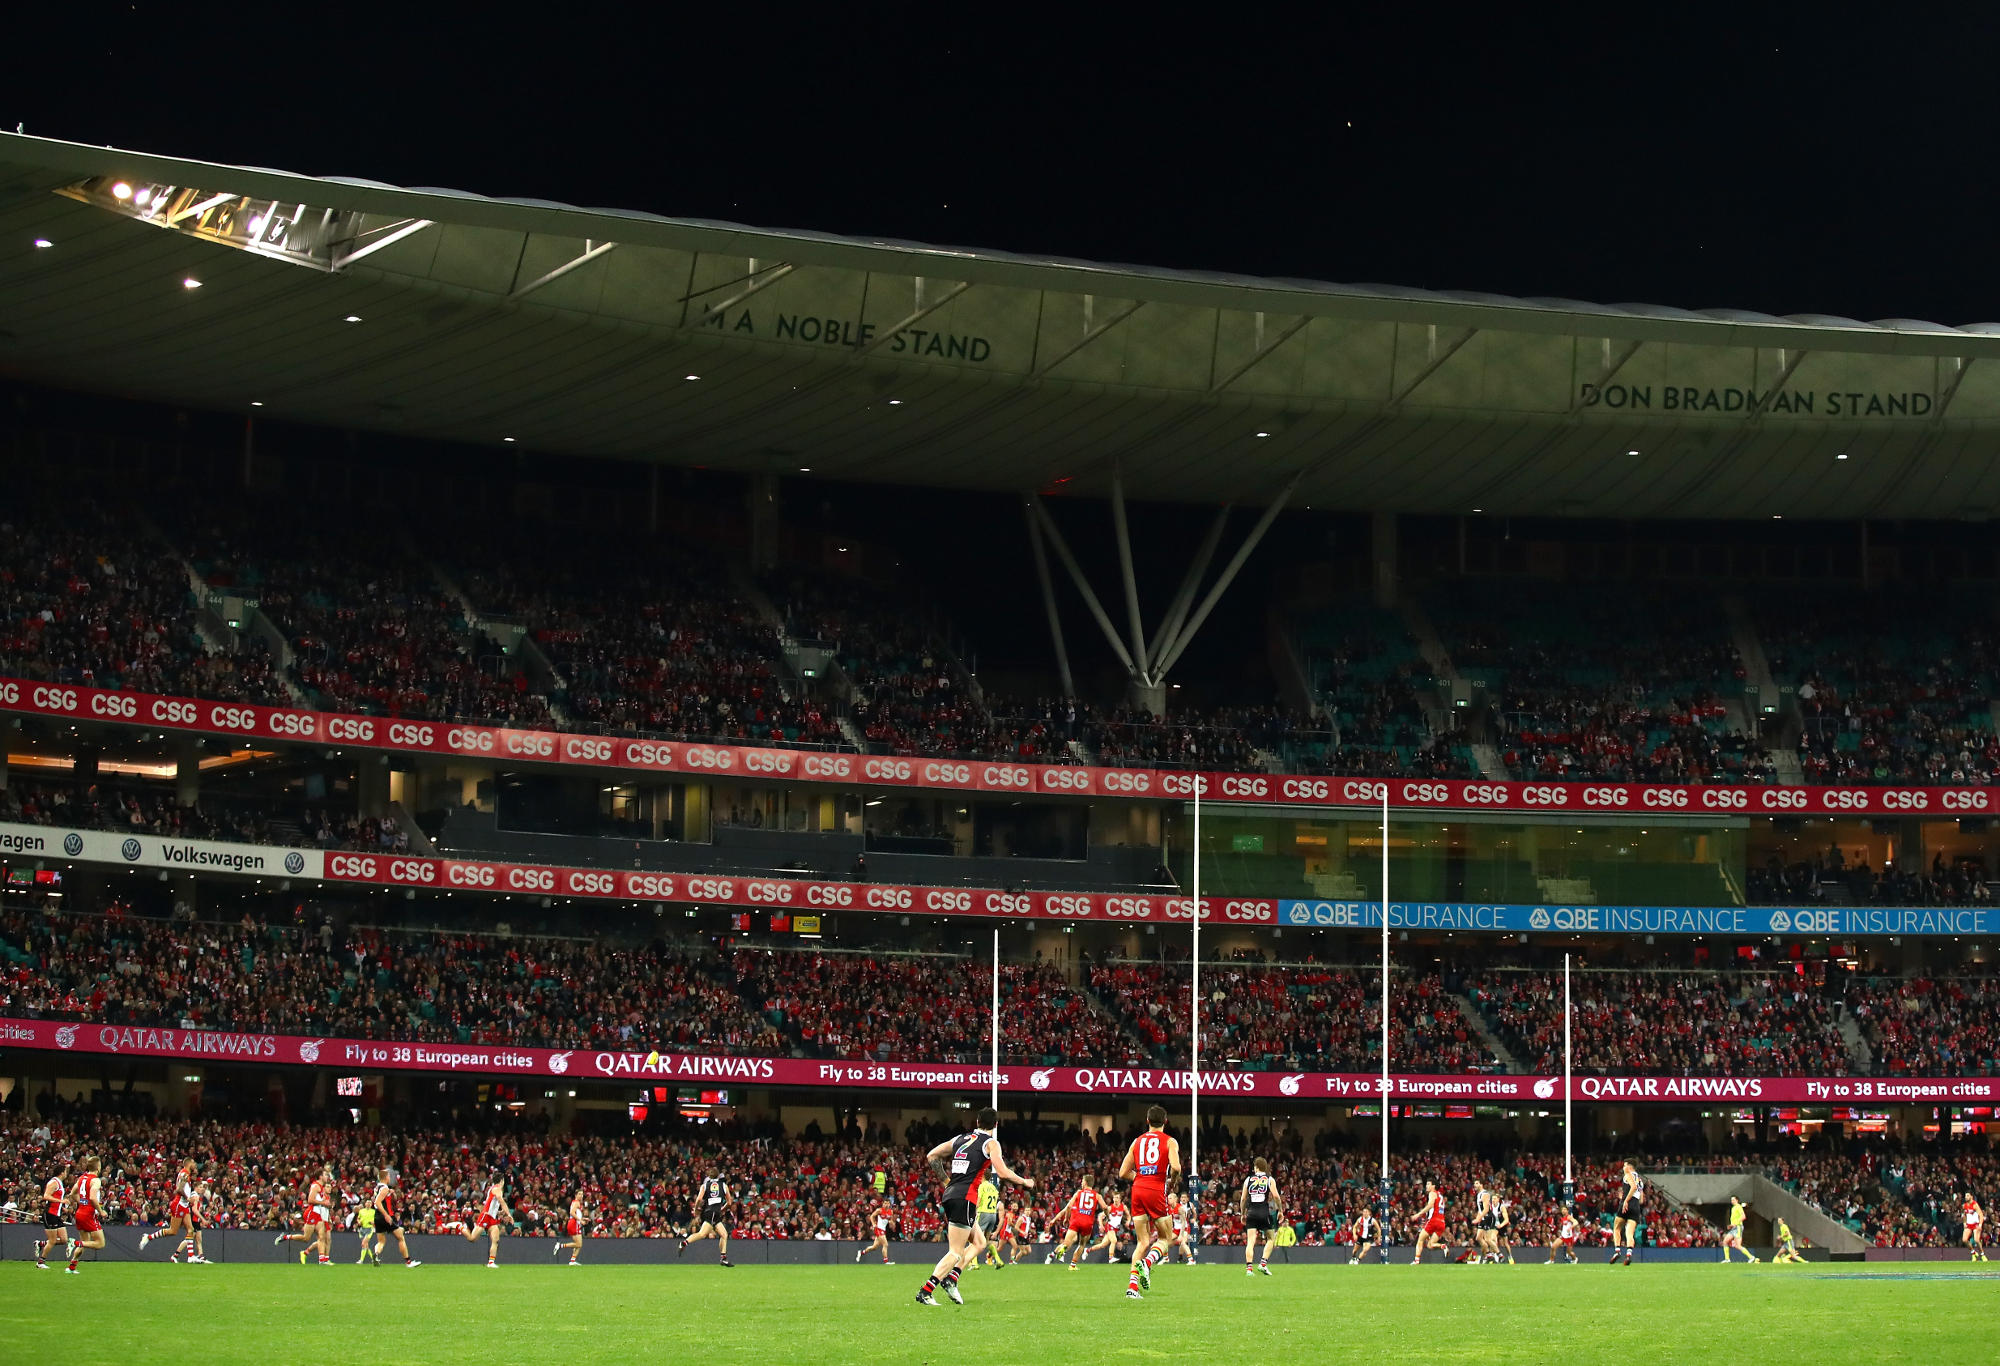 General view of the SCG during a Swans game.